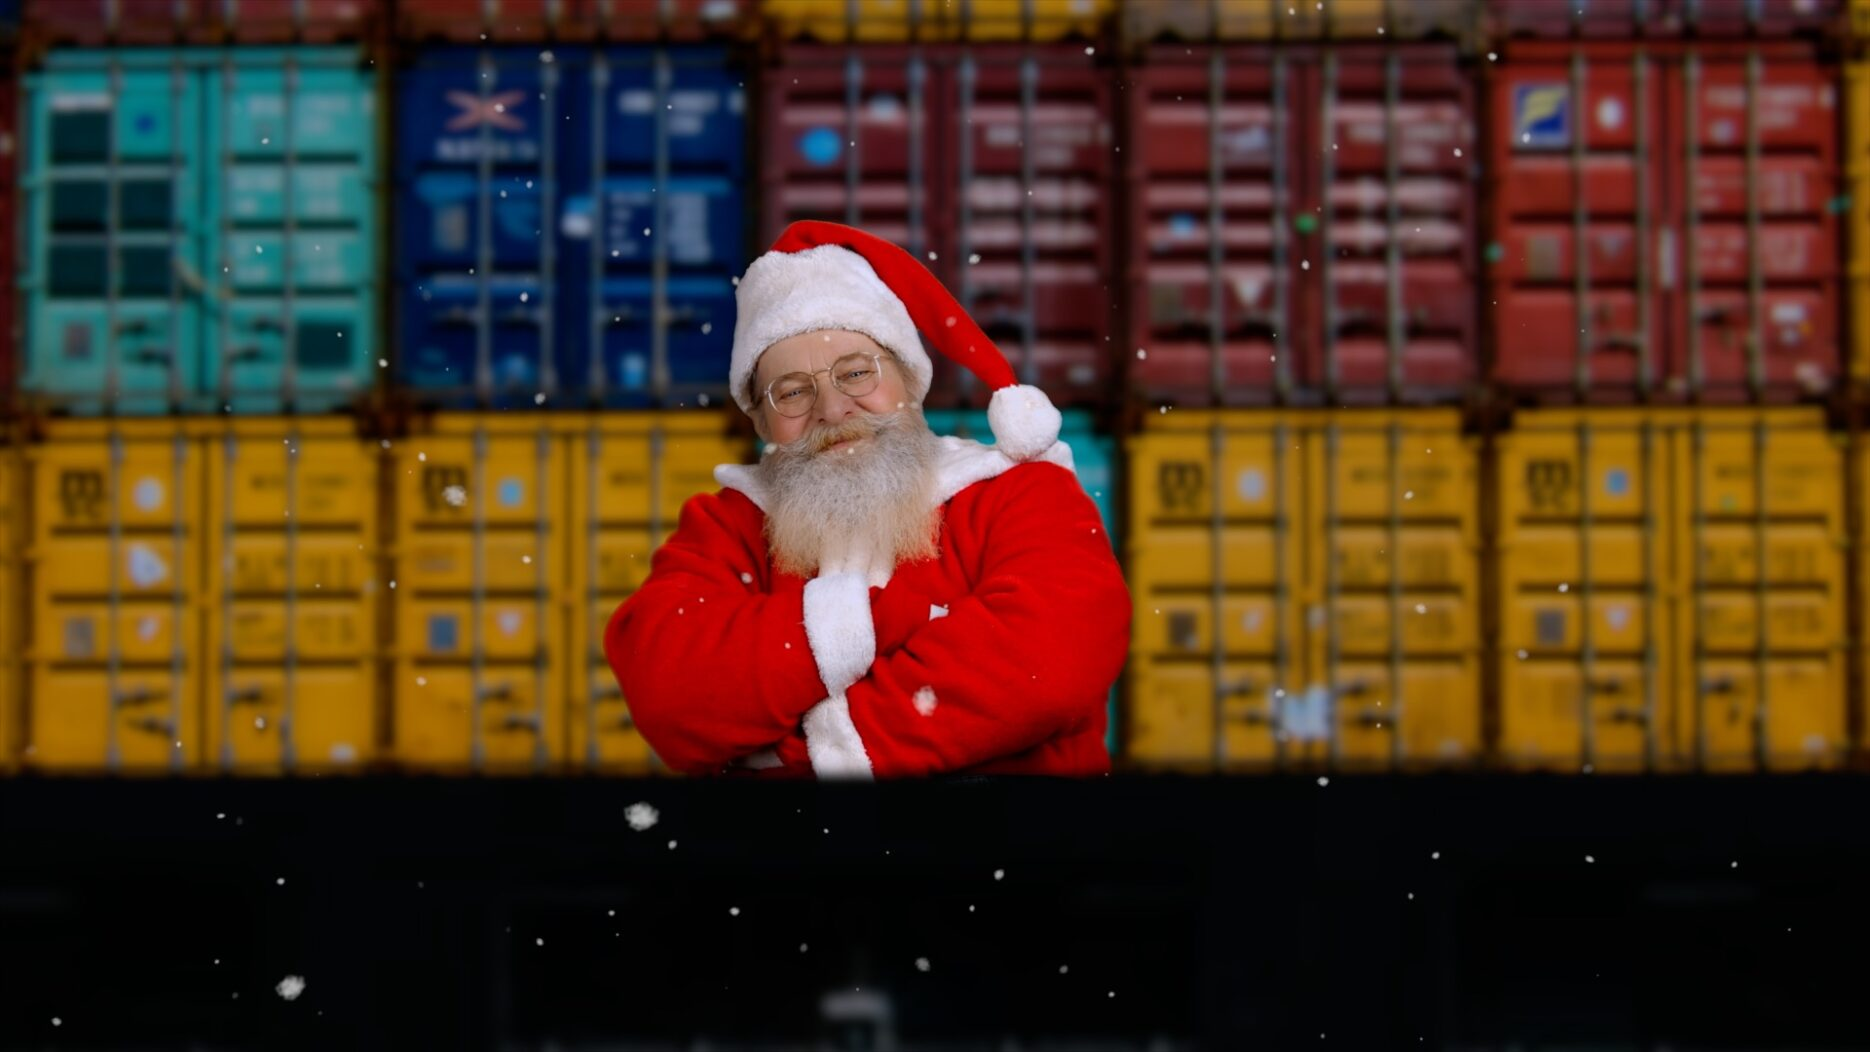 Santa standing on stern of a ship